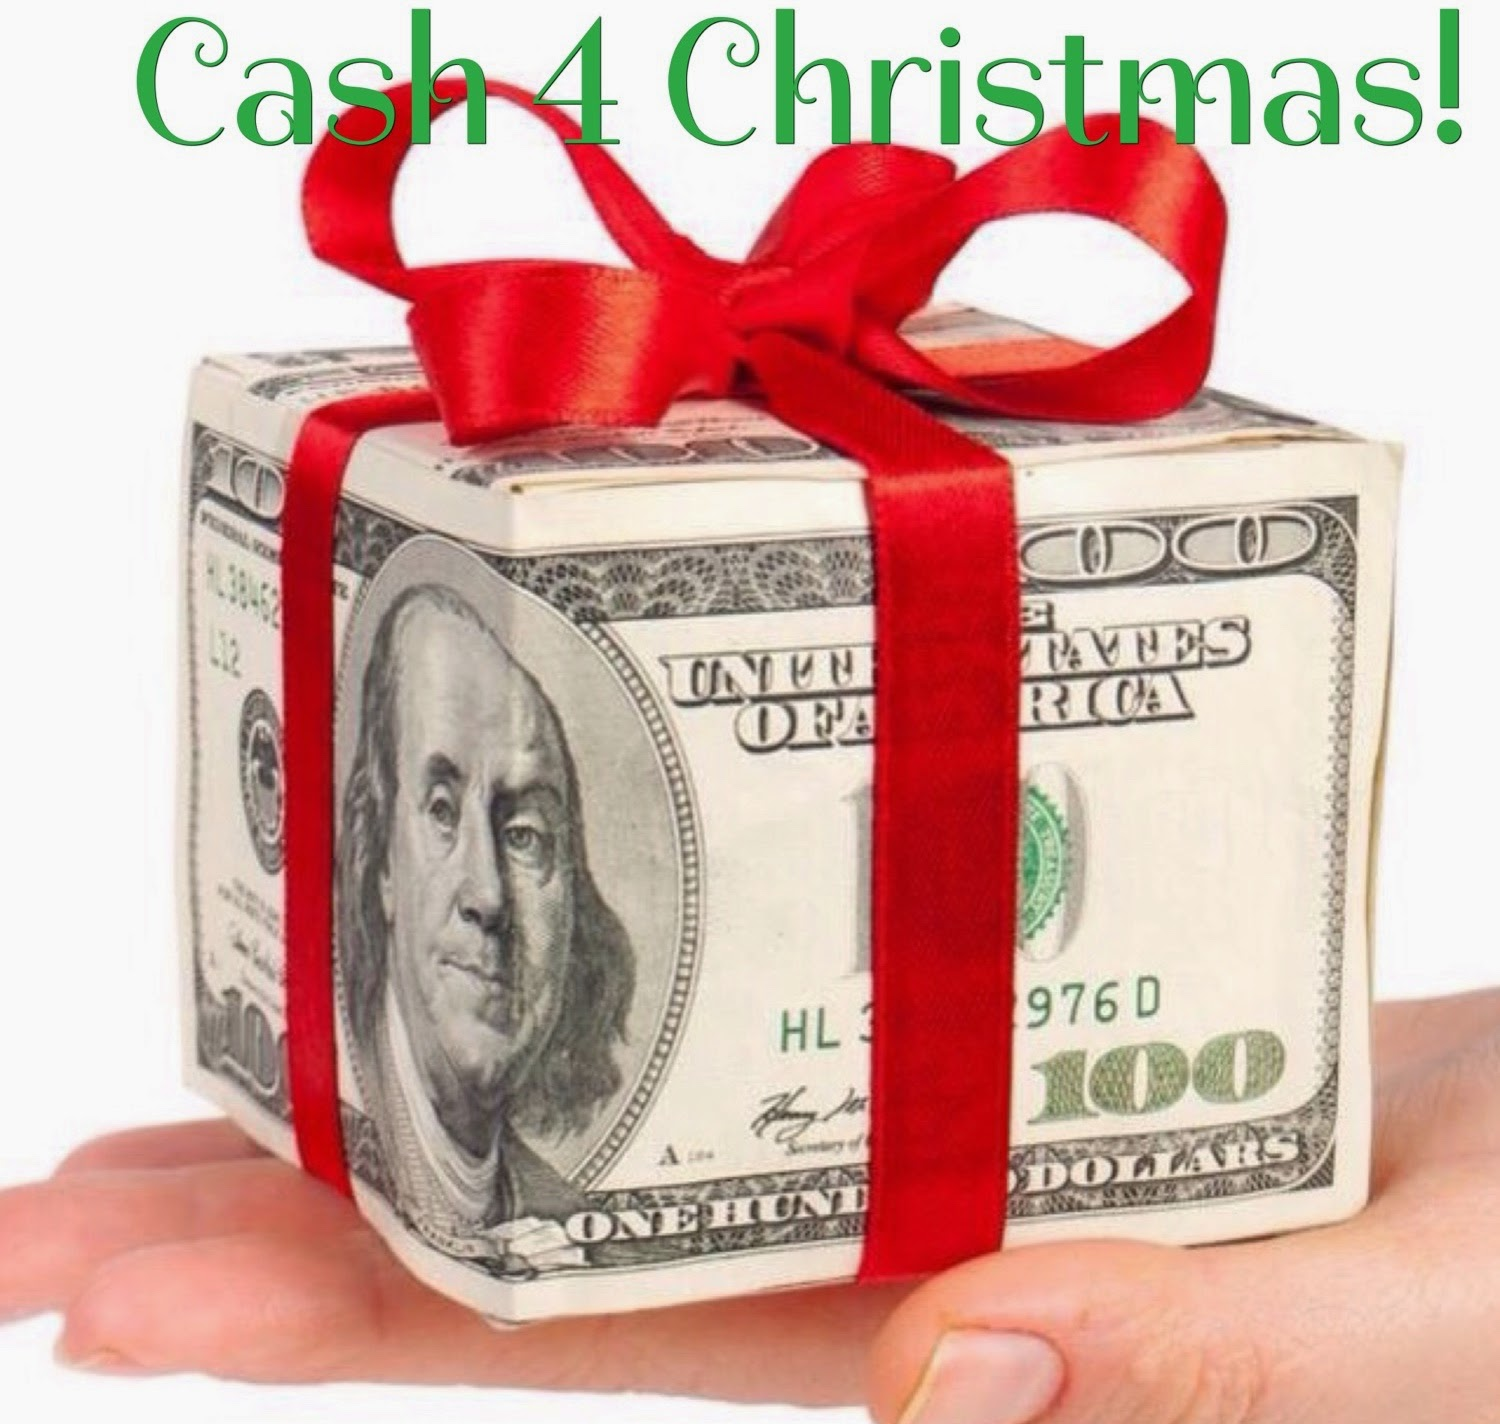 cash for christmas, extra income, dream team, holidays, beachbody coach, team beachbody, paula chavez